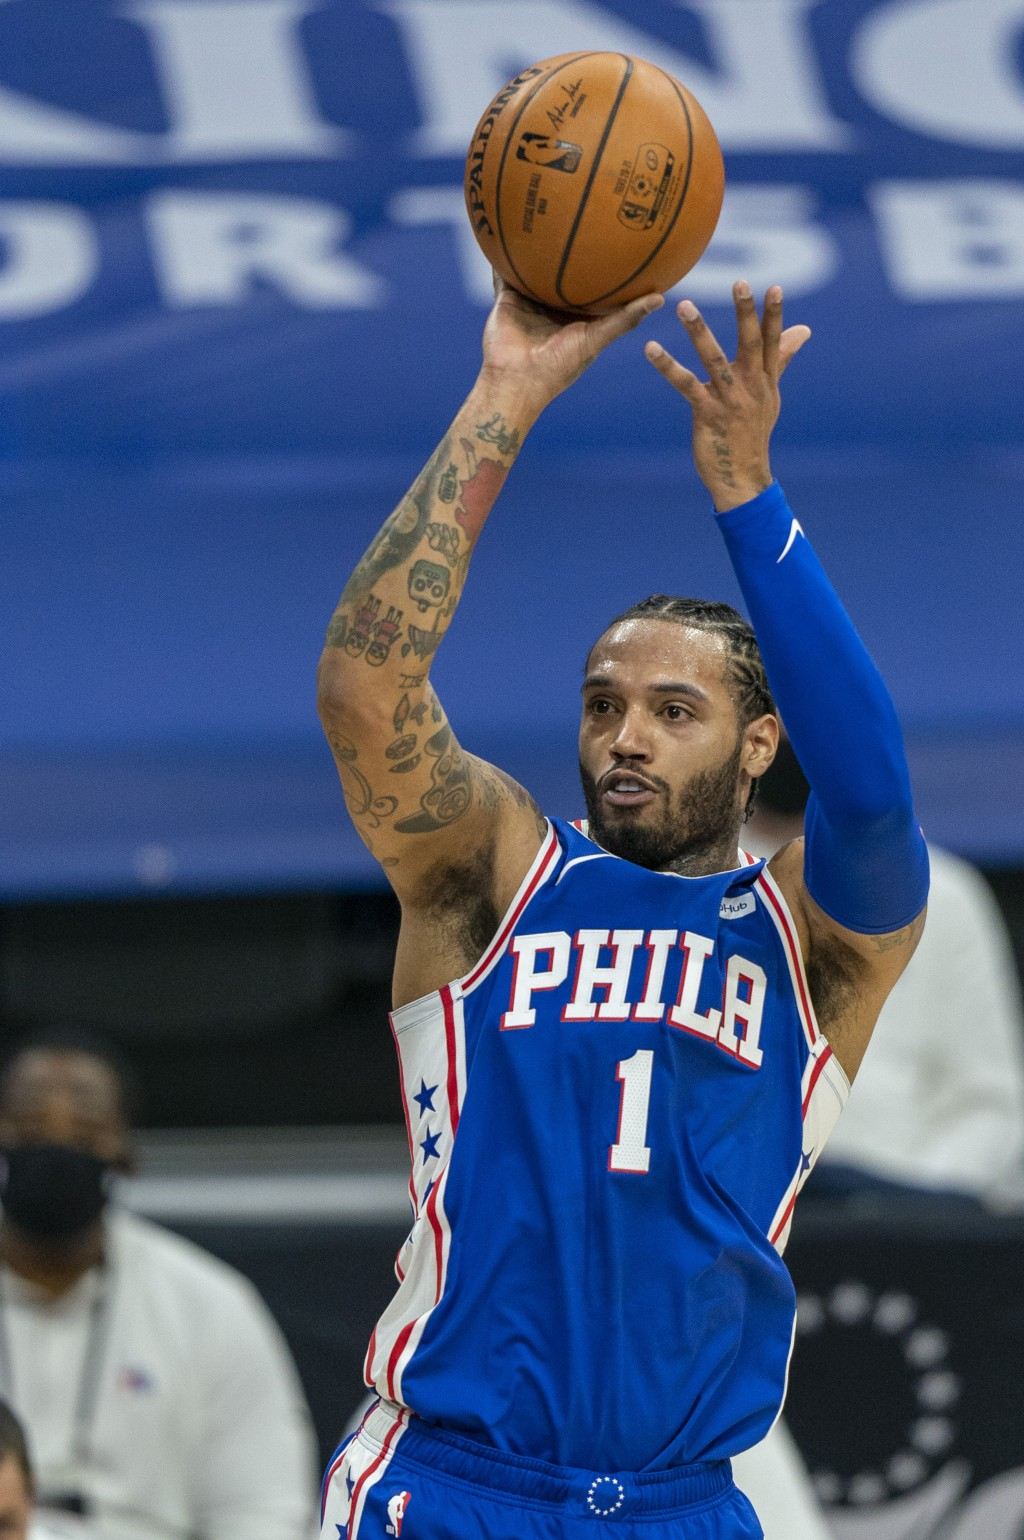 Philadelphia 76ers' Mike Scott shoots a 3-pointer during the first half of the team's NBA basketball game against the Miami Heat, Tuesday, Jan. 12, 20...